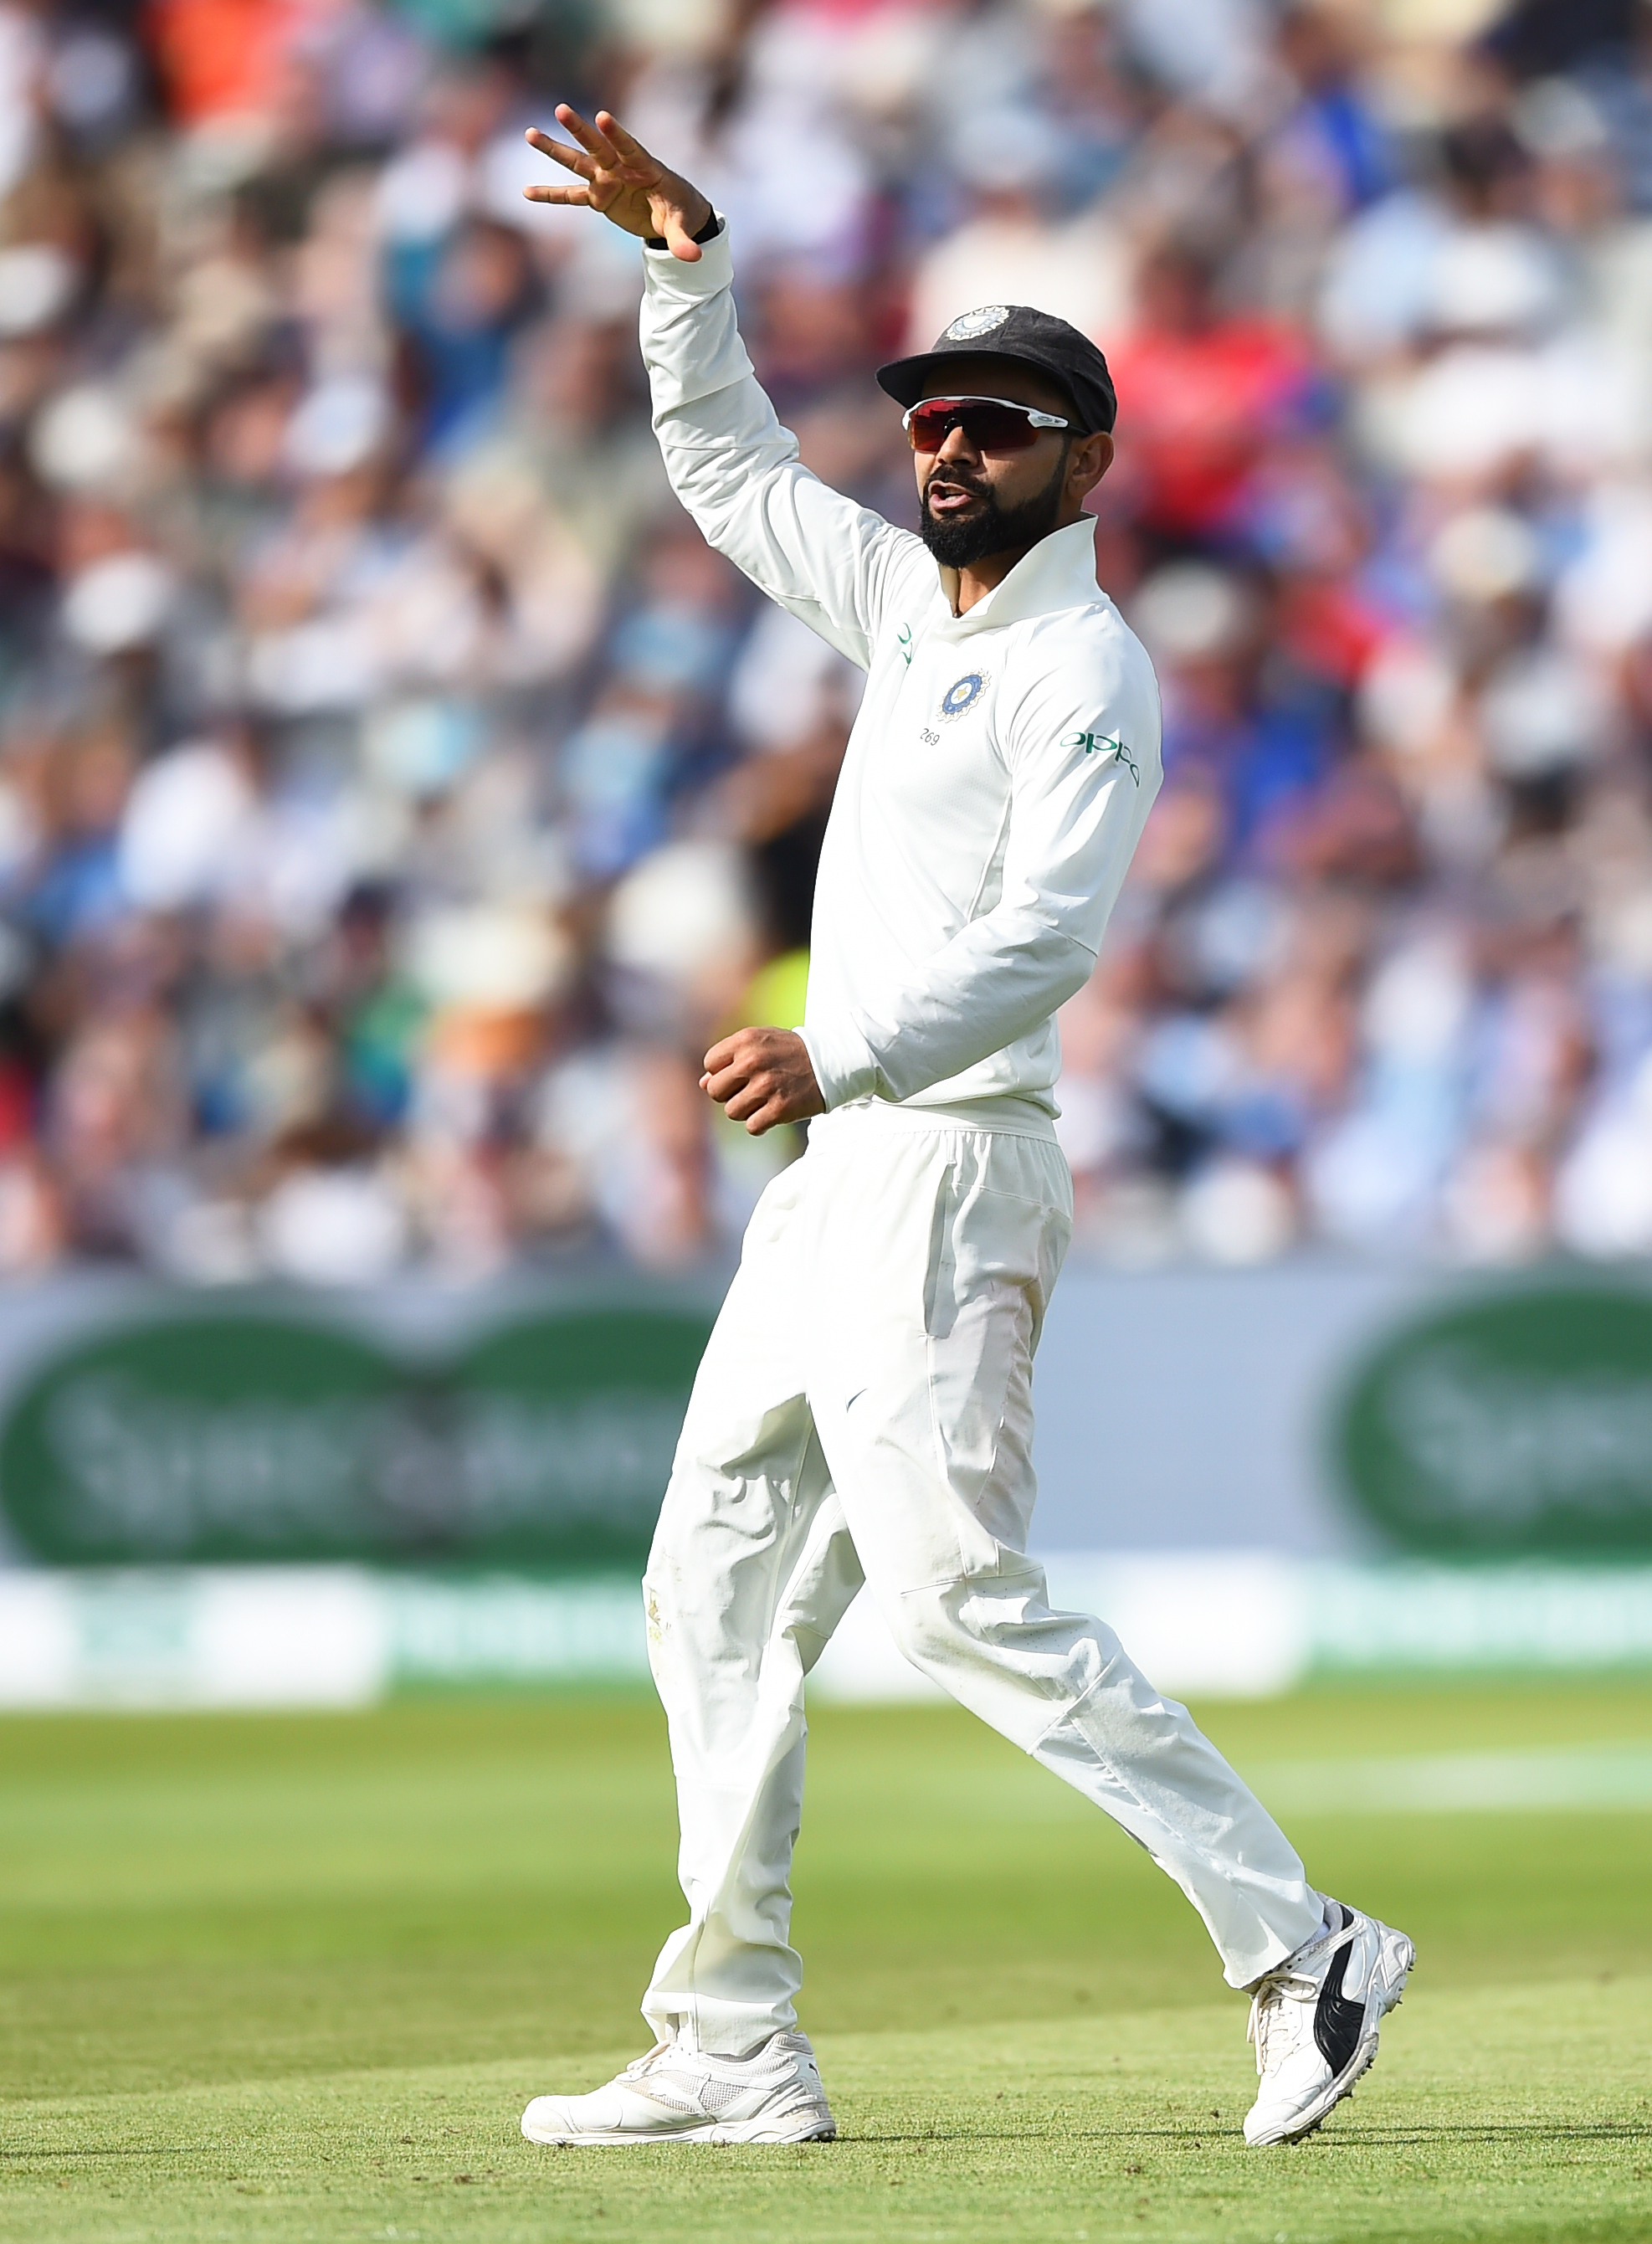 Virat Kohli celebrated Joe Root's wicket in the first innings with a mic drop gesture | Getty